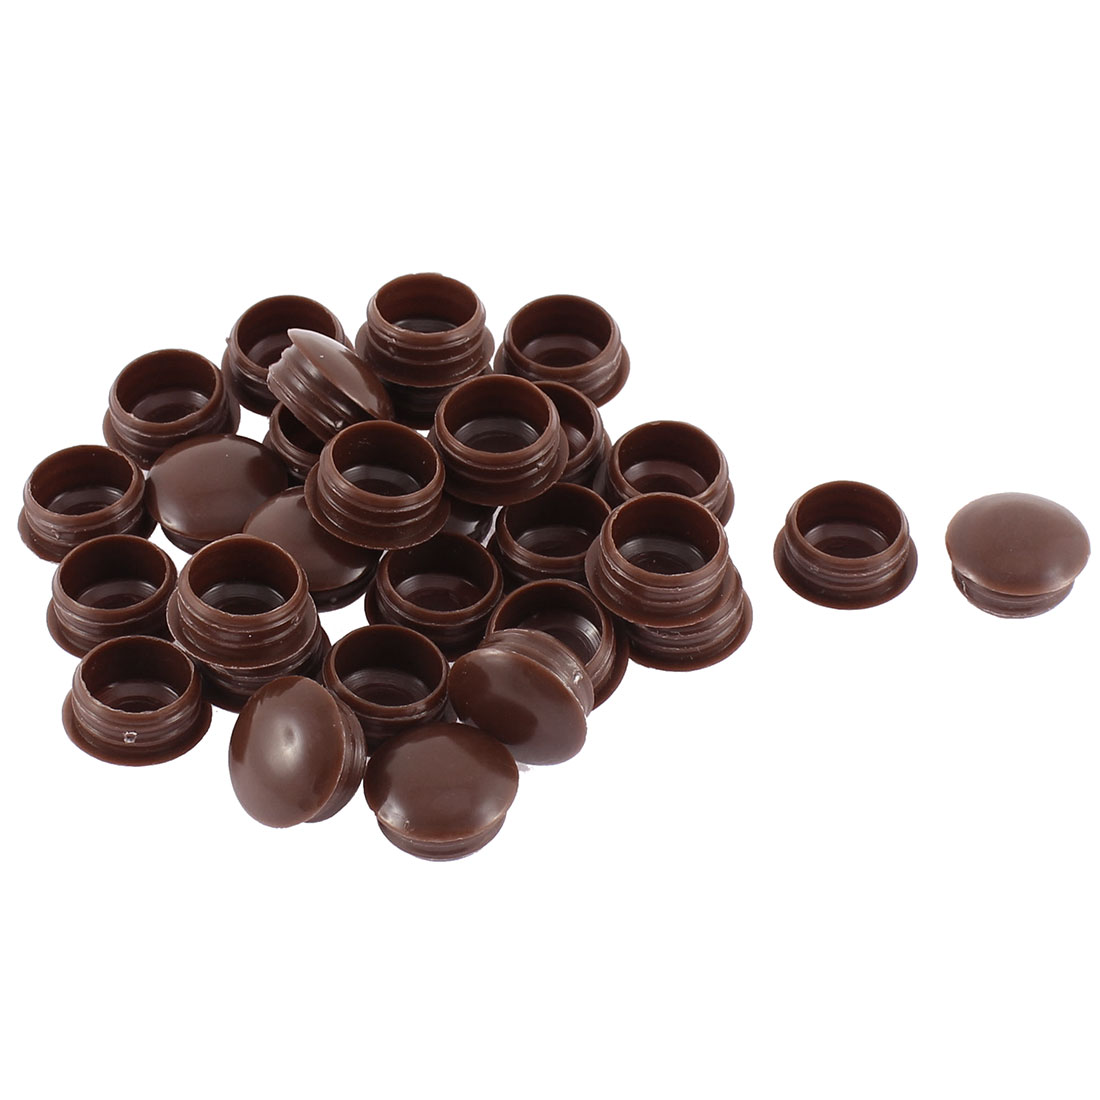 Home Plastic Furniture Decor Hole Cover Caps Tube Insert Coffee Color 30pcs